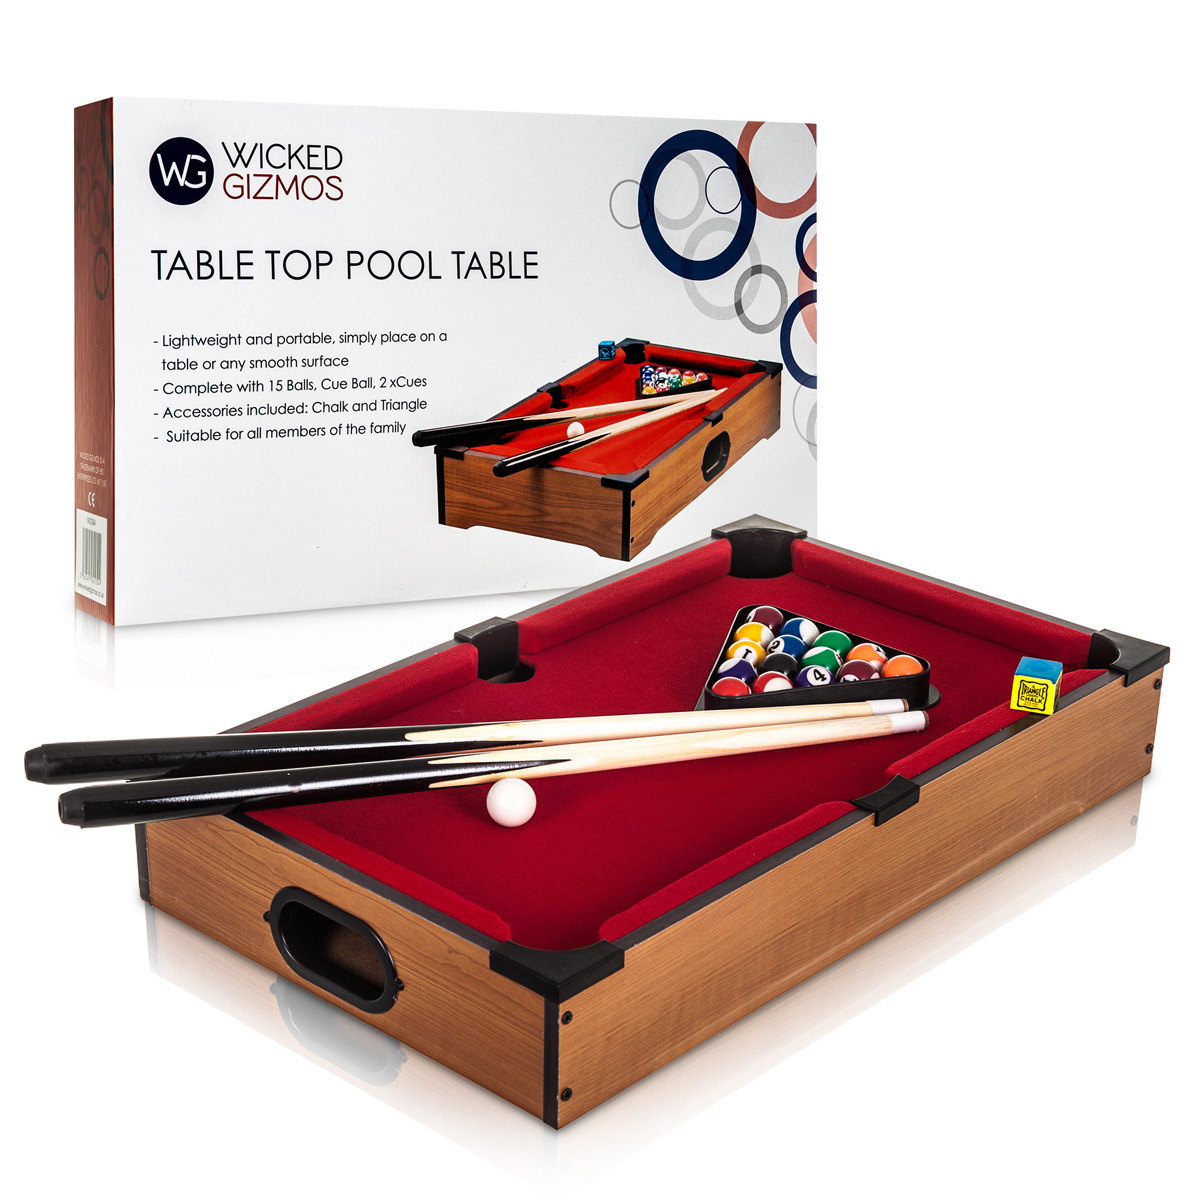 Original Giant BLACK 8 Ball Cue Stand /& Rack Holds Up To 9 Cues by Funky Chalk